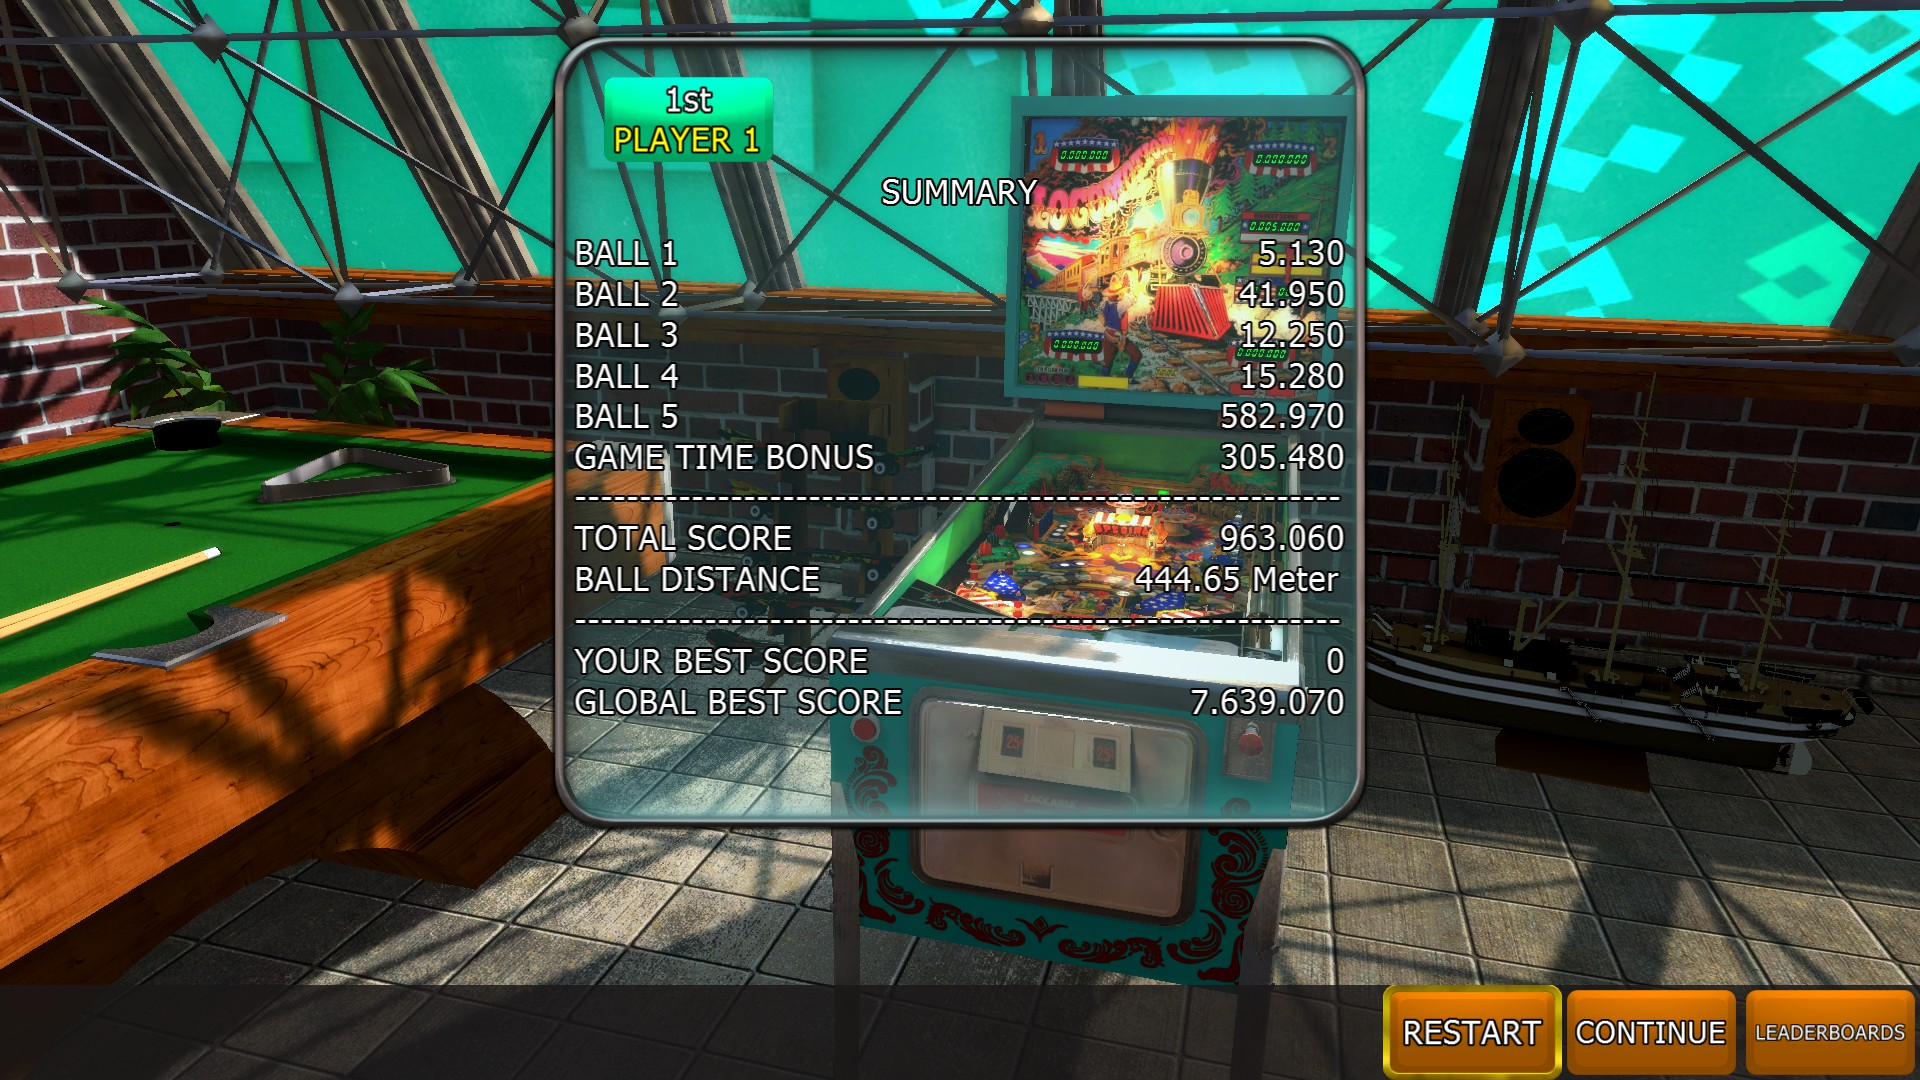 Mantalow: Zaccaria Pinball: Locomotion [5 balls] (PC) 963,060 points on 2018-04-10 06:00:55